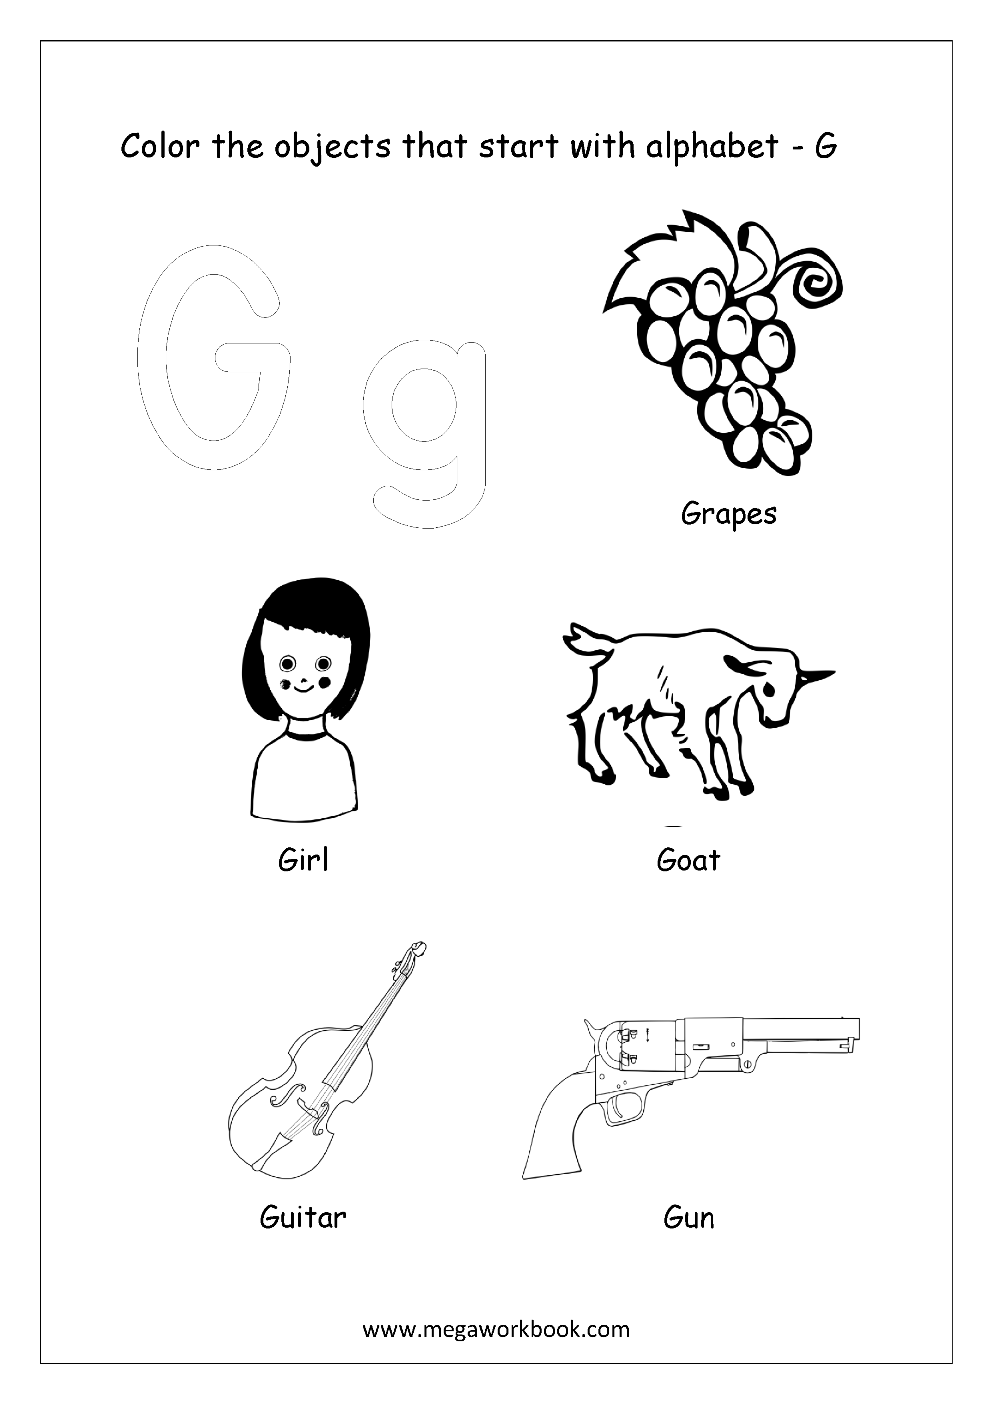 Alphabet Picture Coloring Pages Things That Start With Each Alphabet Free Printable Kindergarten Worksheets Megaworkbook